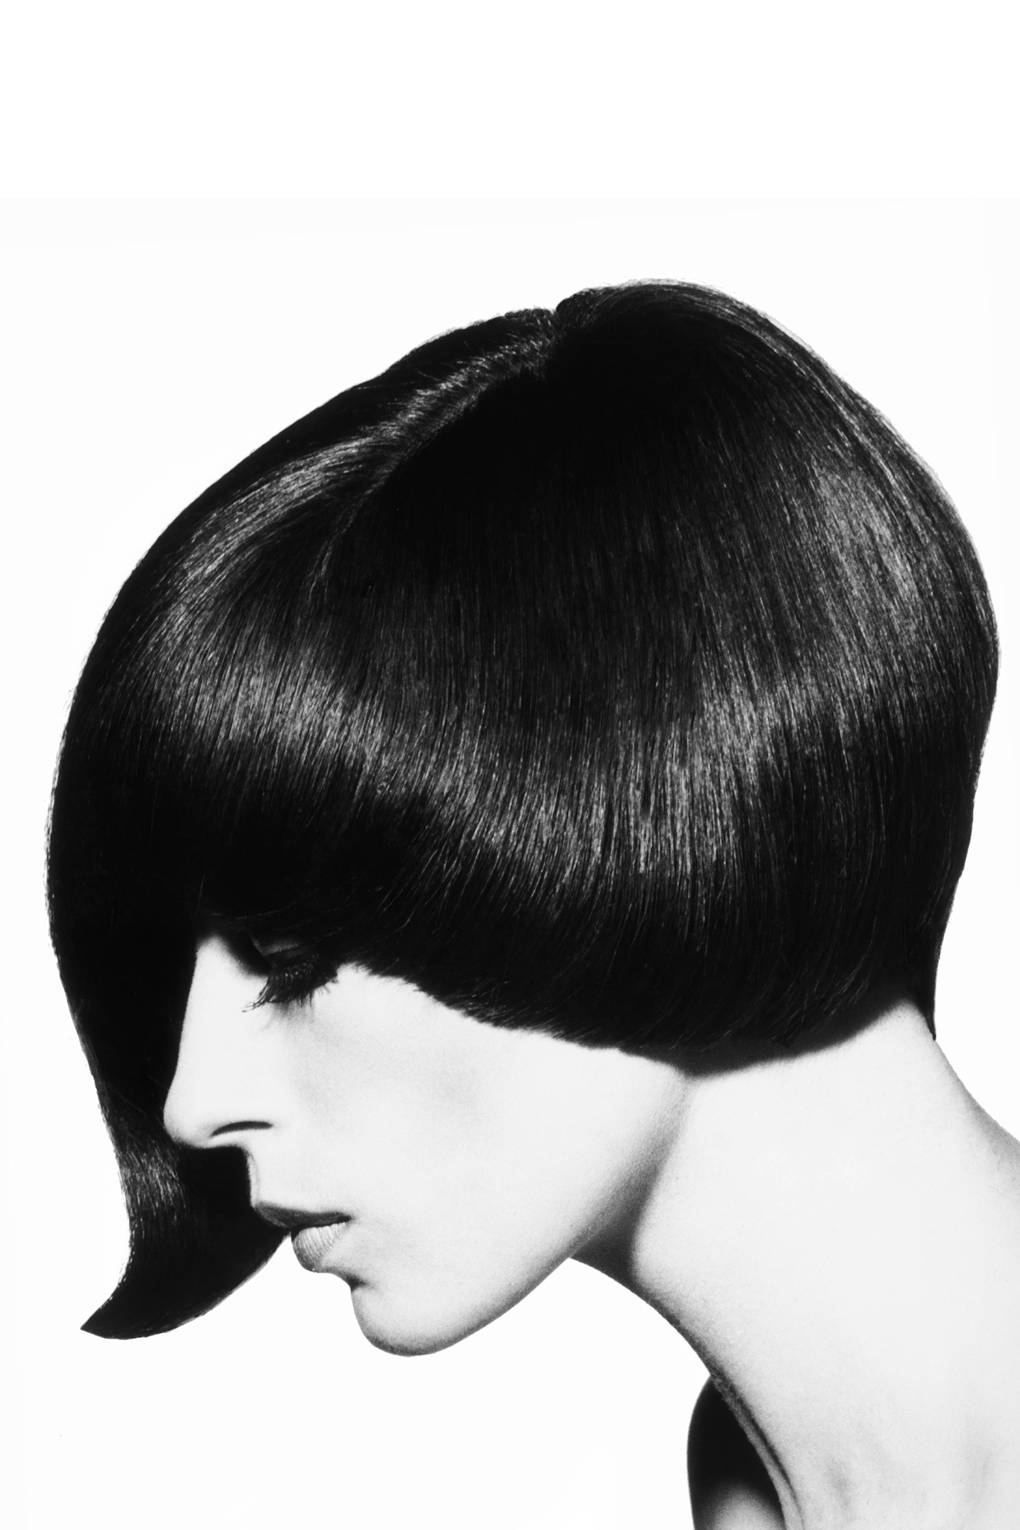 Vidal Sassoon Hairstyles And Haircuts Photo Tribute British Vogue